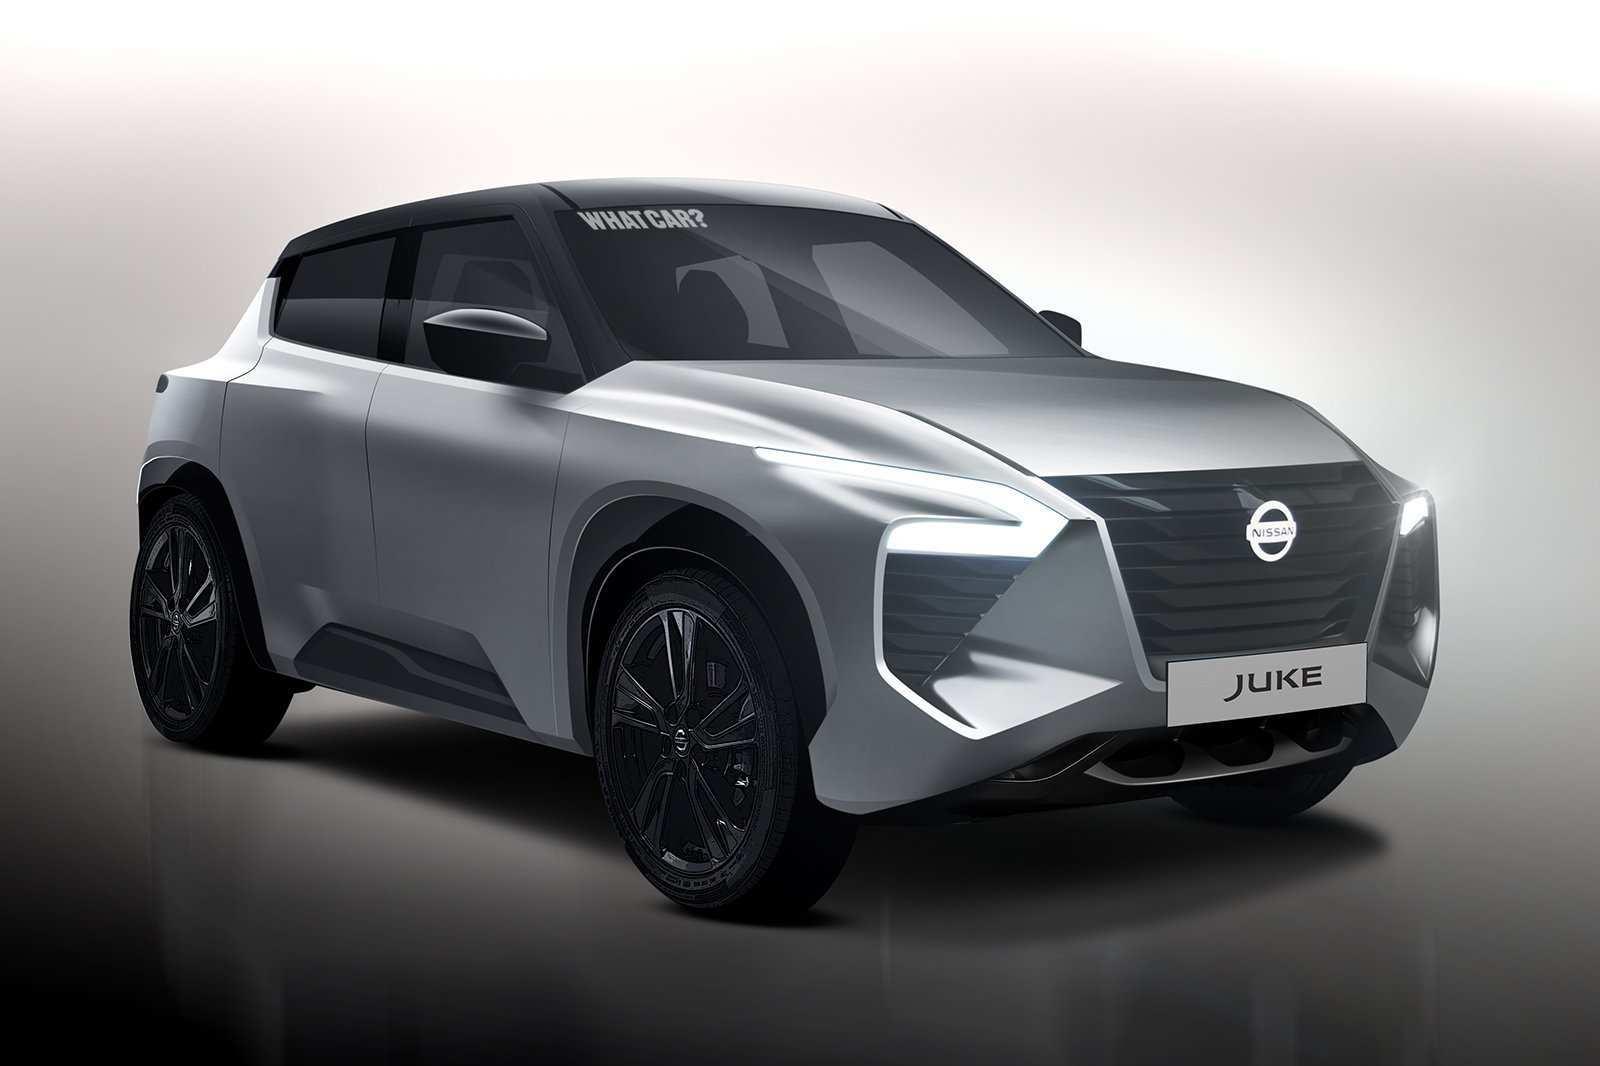 52 The Best Nissan Juke 2019 Release Date Specs And Review